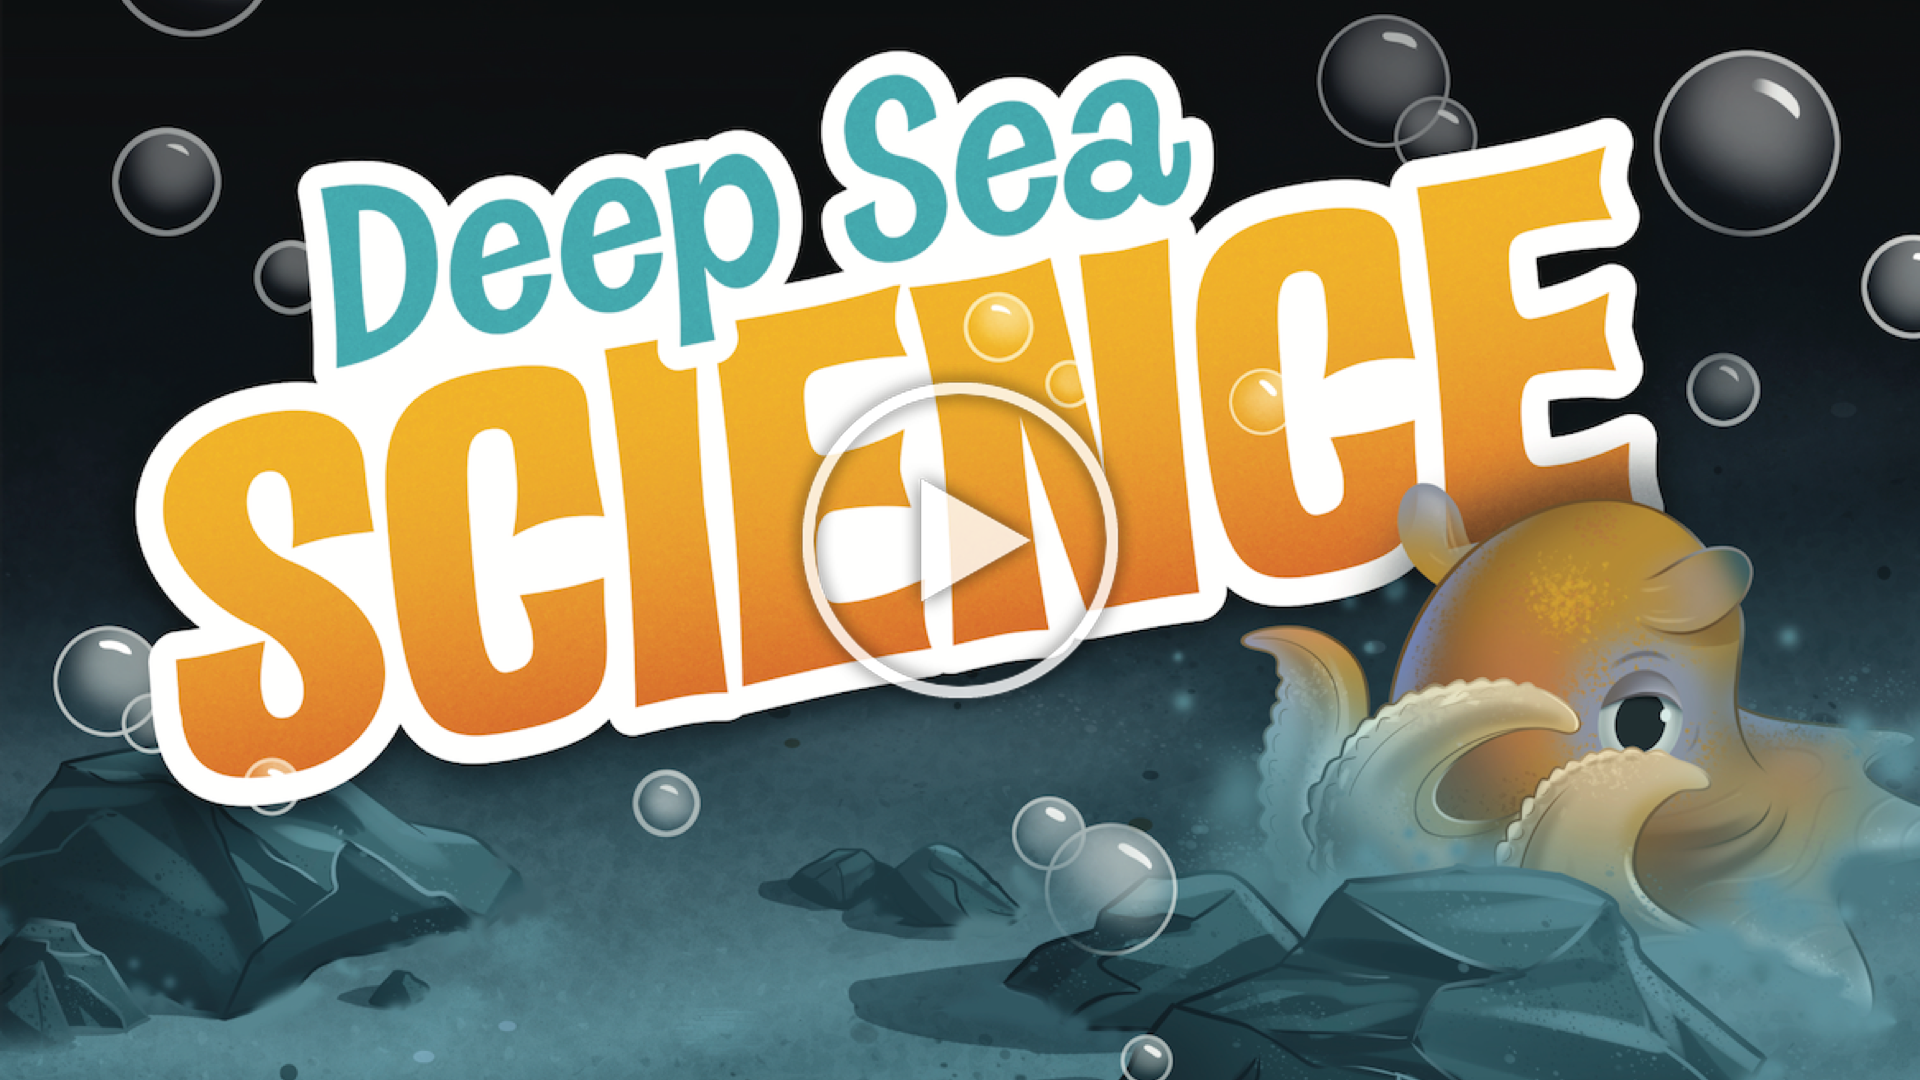 Deep Sea Science play video